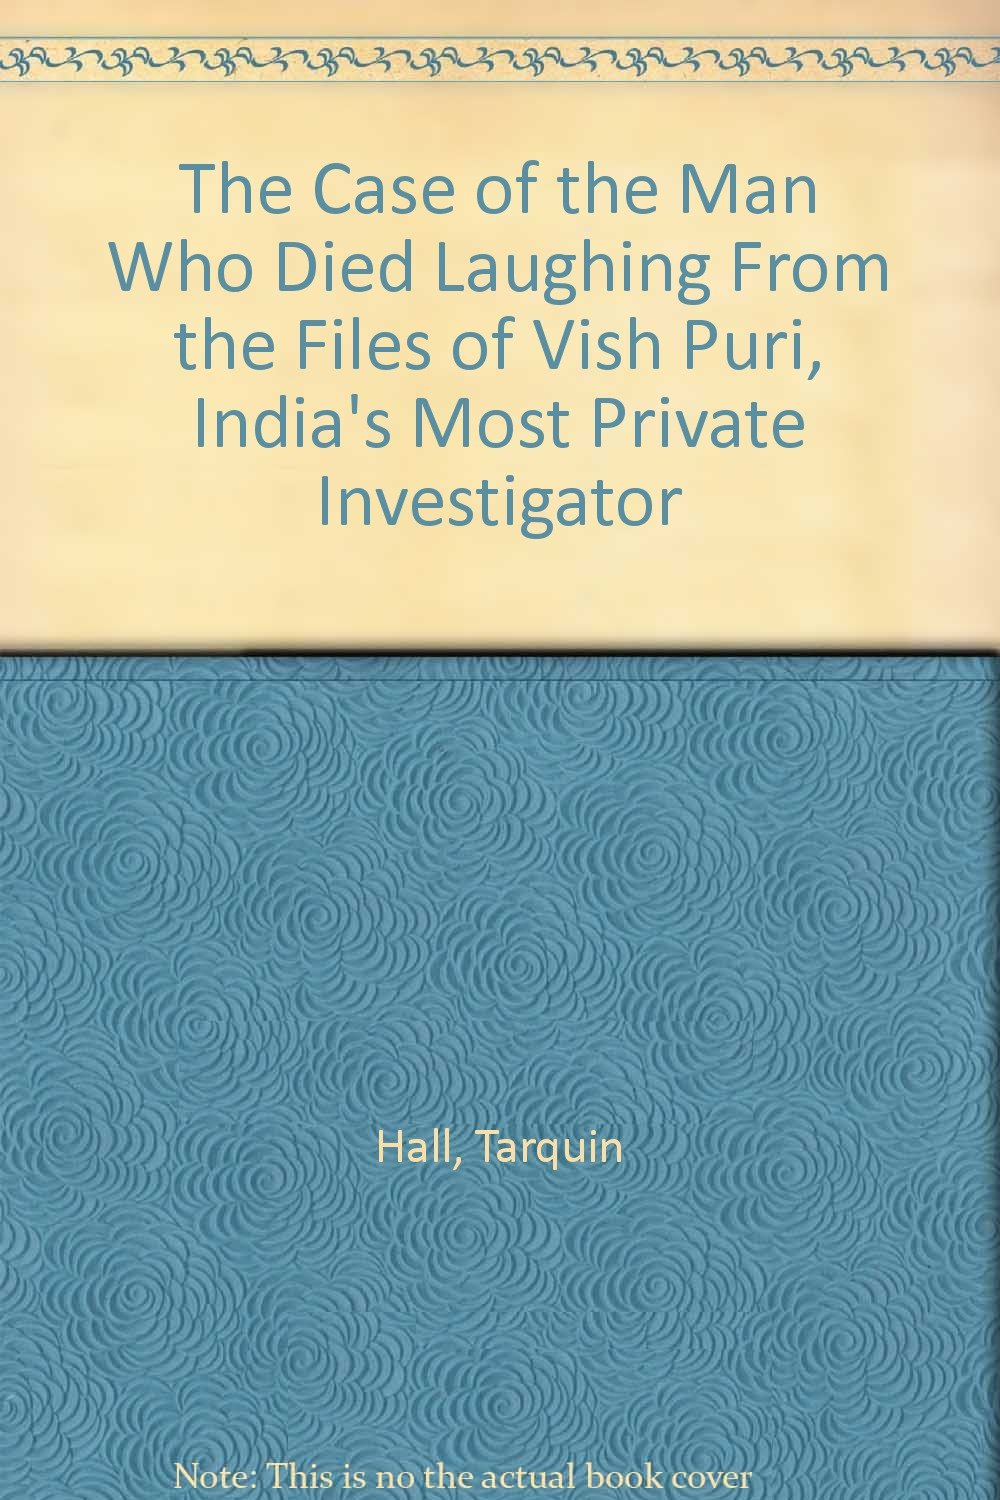 The Case of the Man Who Died Laughing From the Files of Vish Puri, India's  Most Private Investigator: Tarquin Hall: 9780684078366: Amazon.com: Books